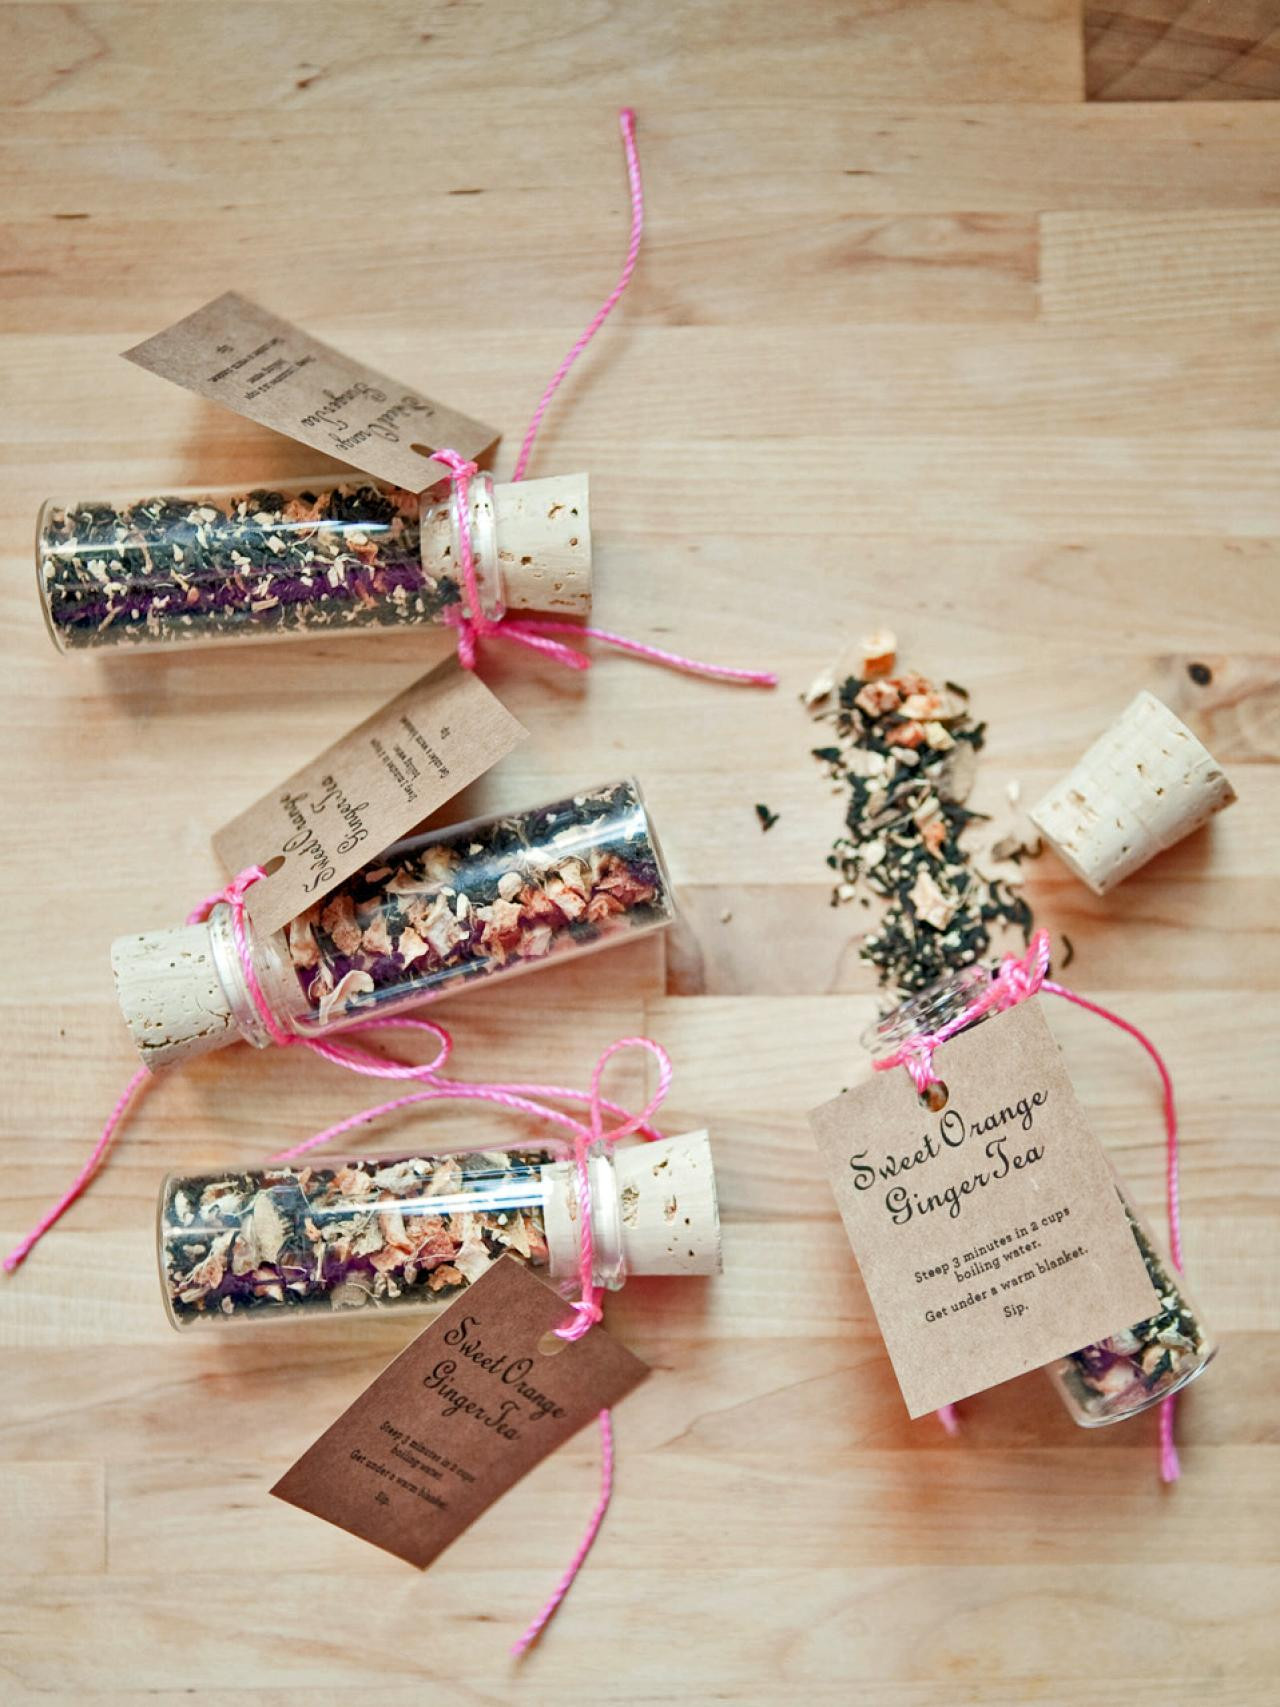 Holiday Party Gift Ideas  30 Festive DIY Holiday Party Favors